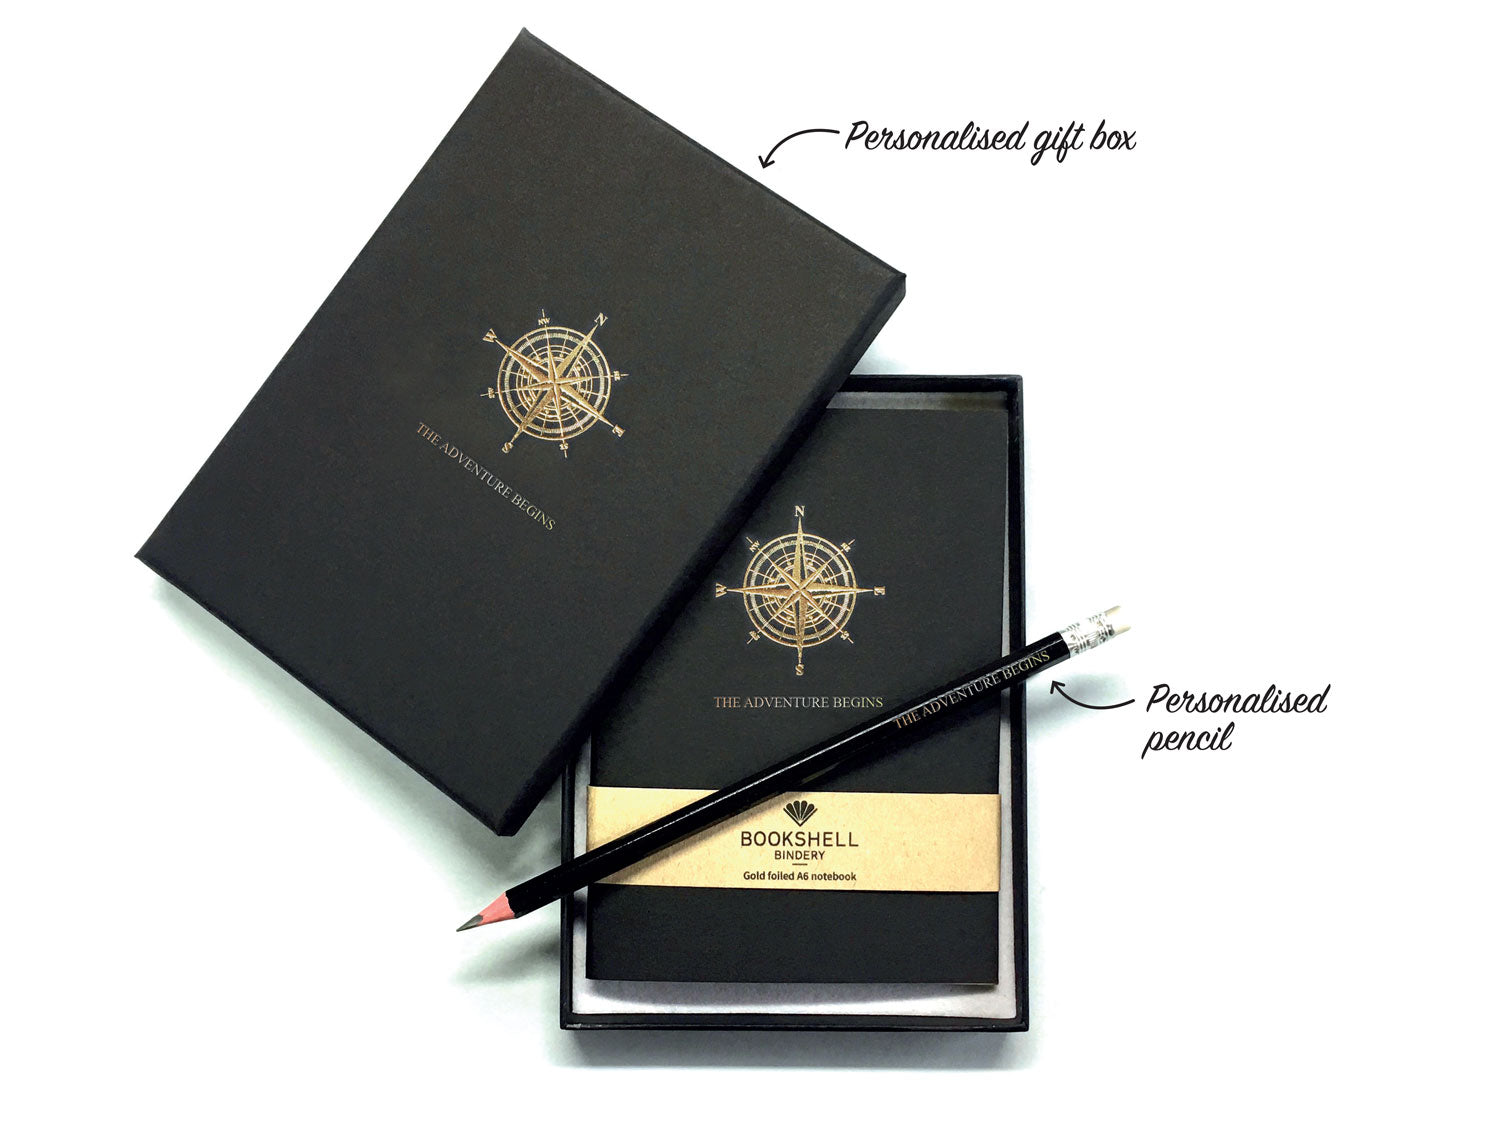 Pocket notebook with personalised gift box and pencil from Bookshell Bindery